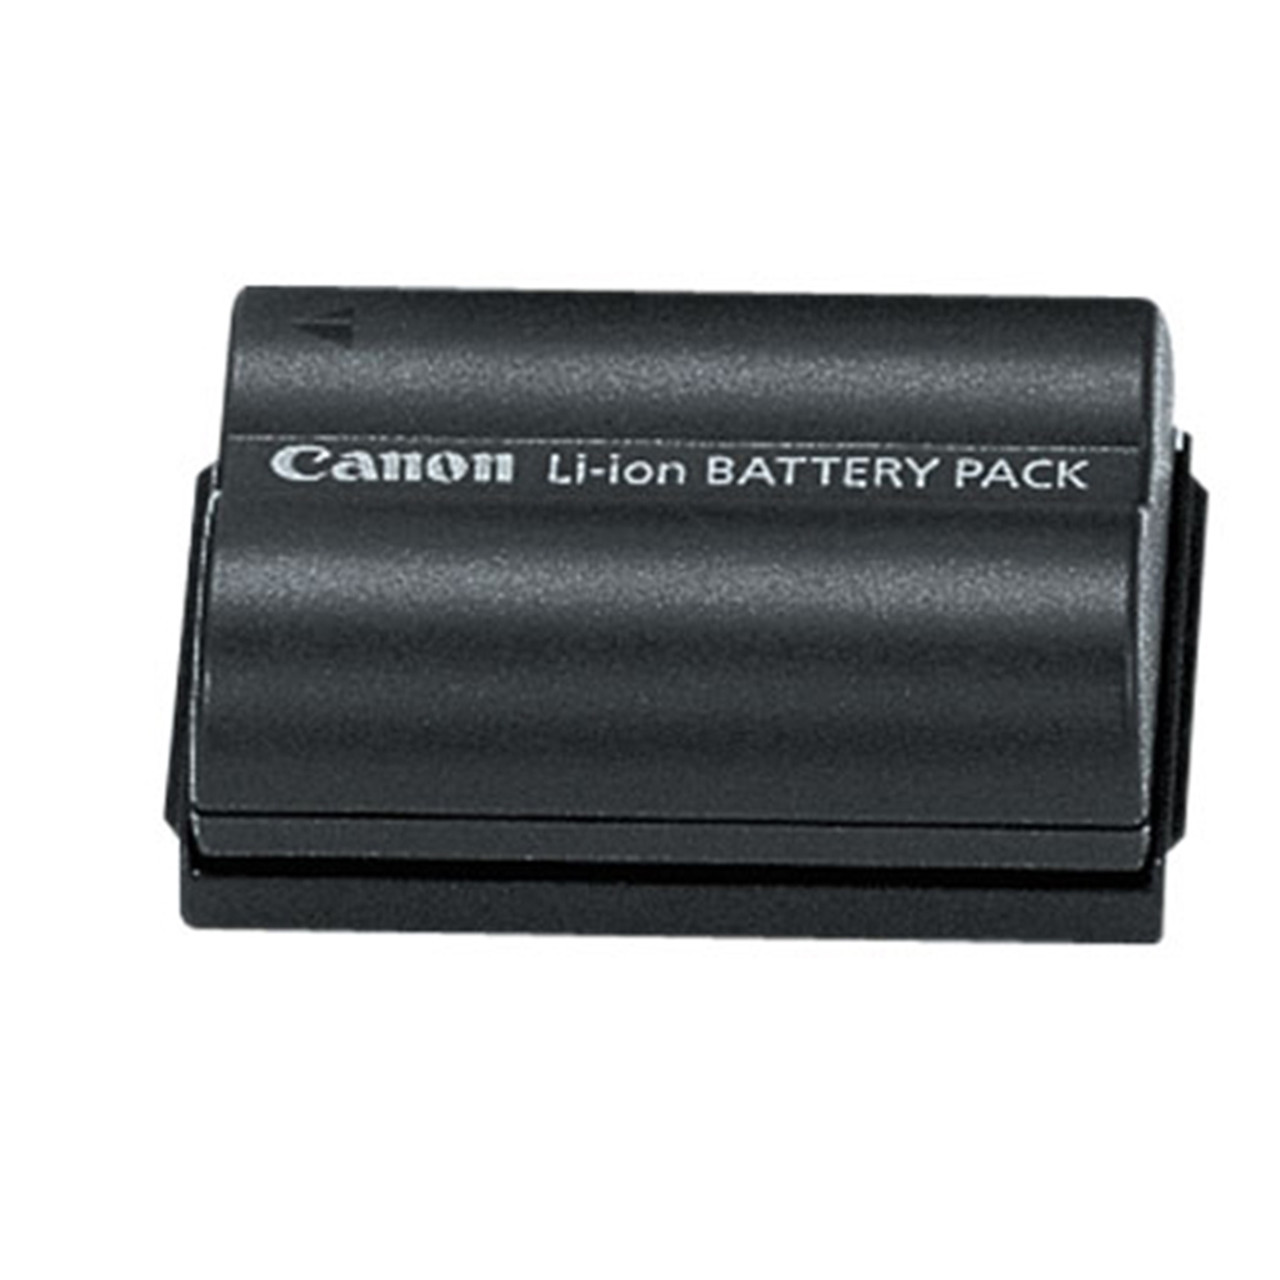 CANON BP-511A BATTERY PACK